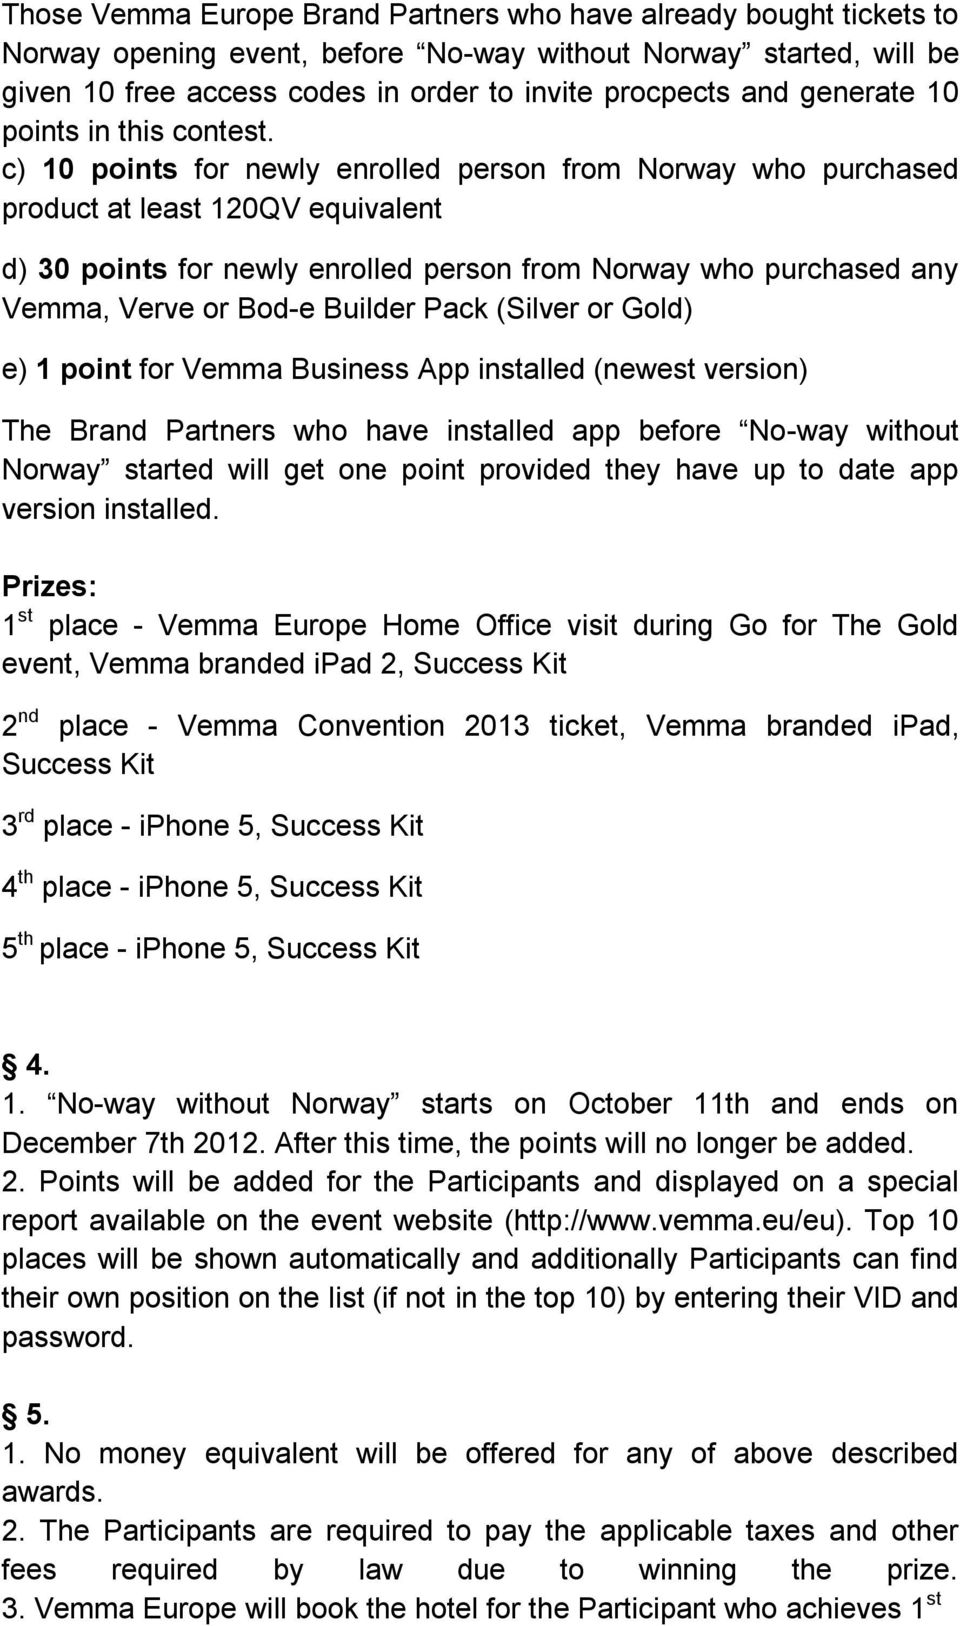 c) 10 points for newly enrolled person from Norway who purchased product at least 120QV equivalent d) 30 points for newly enrolled person from Norway who purchased any Vemma, Verve or Bod-e Builder